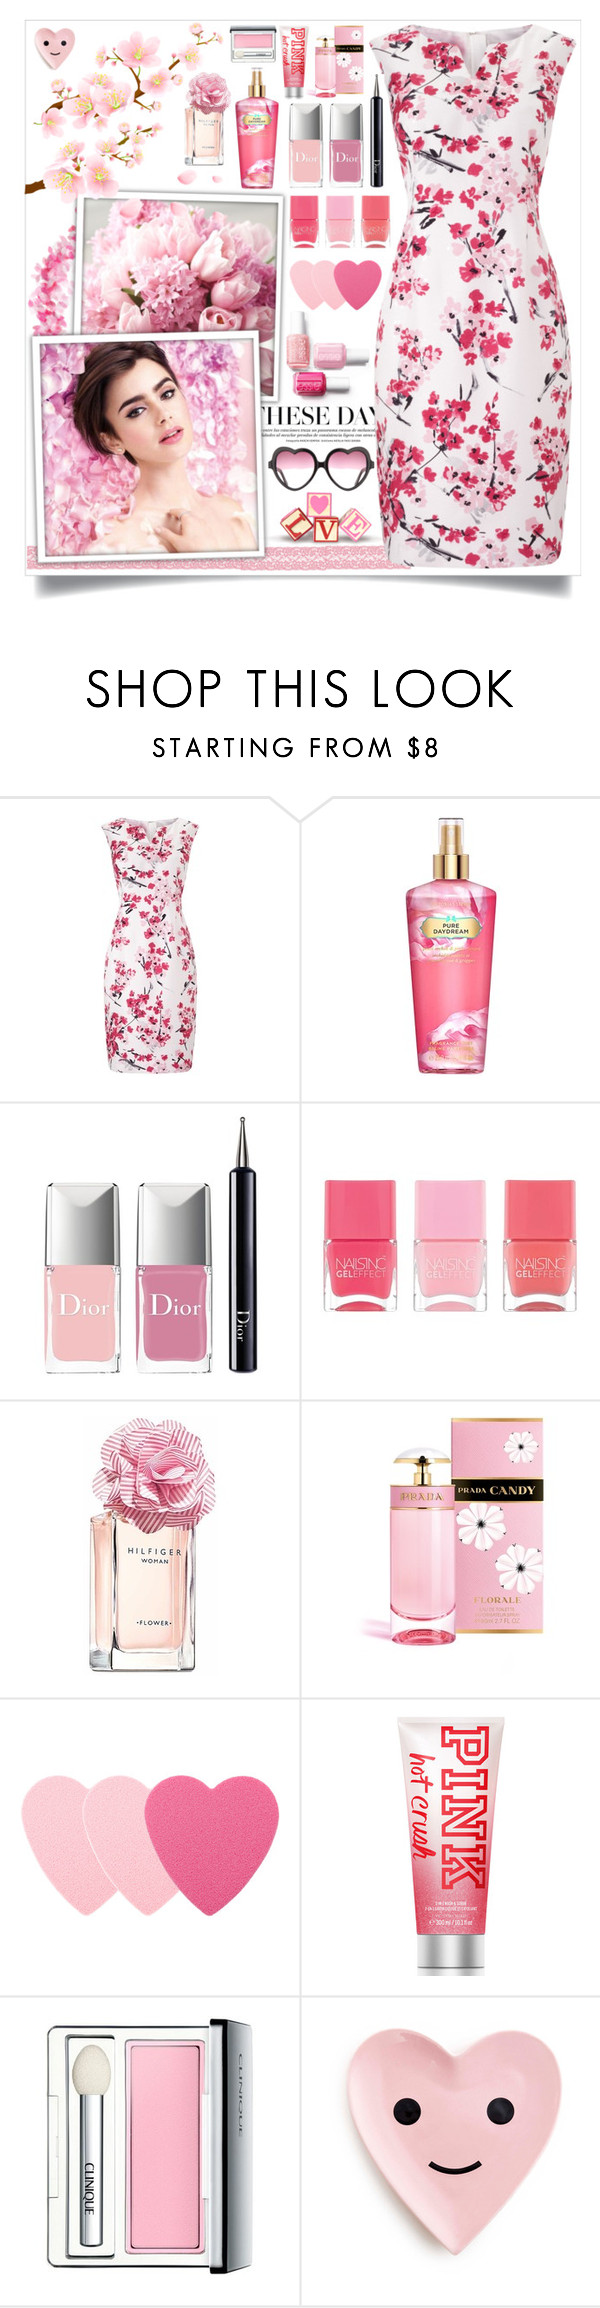 """Cherry Blossoms"" by angelstylee ❤ liked on Polyvore featuring Precis Petite, Victoria's Secret, Christian Dior, Nails Inc., Tommy Hilfiger, Prada, Sephora Collection, Clinique, Pink and cherry"